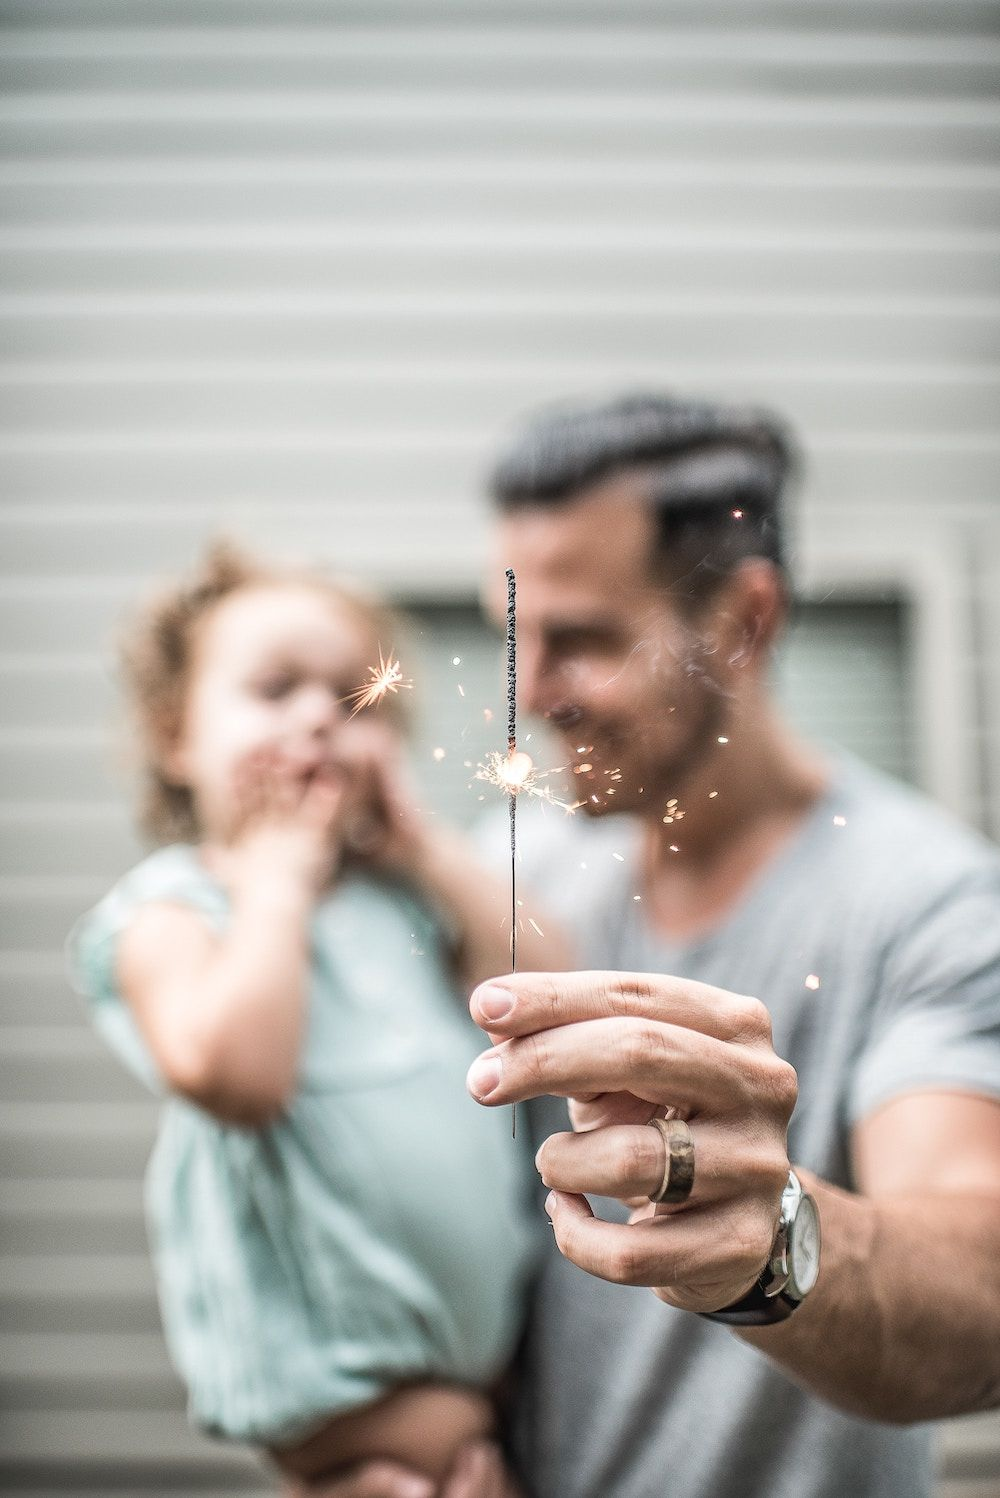 father holding daughter and celebrating with a sparkler